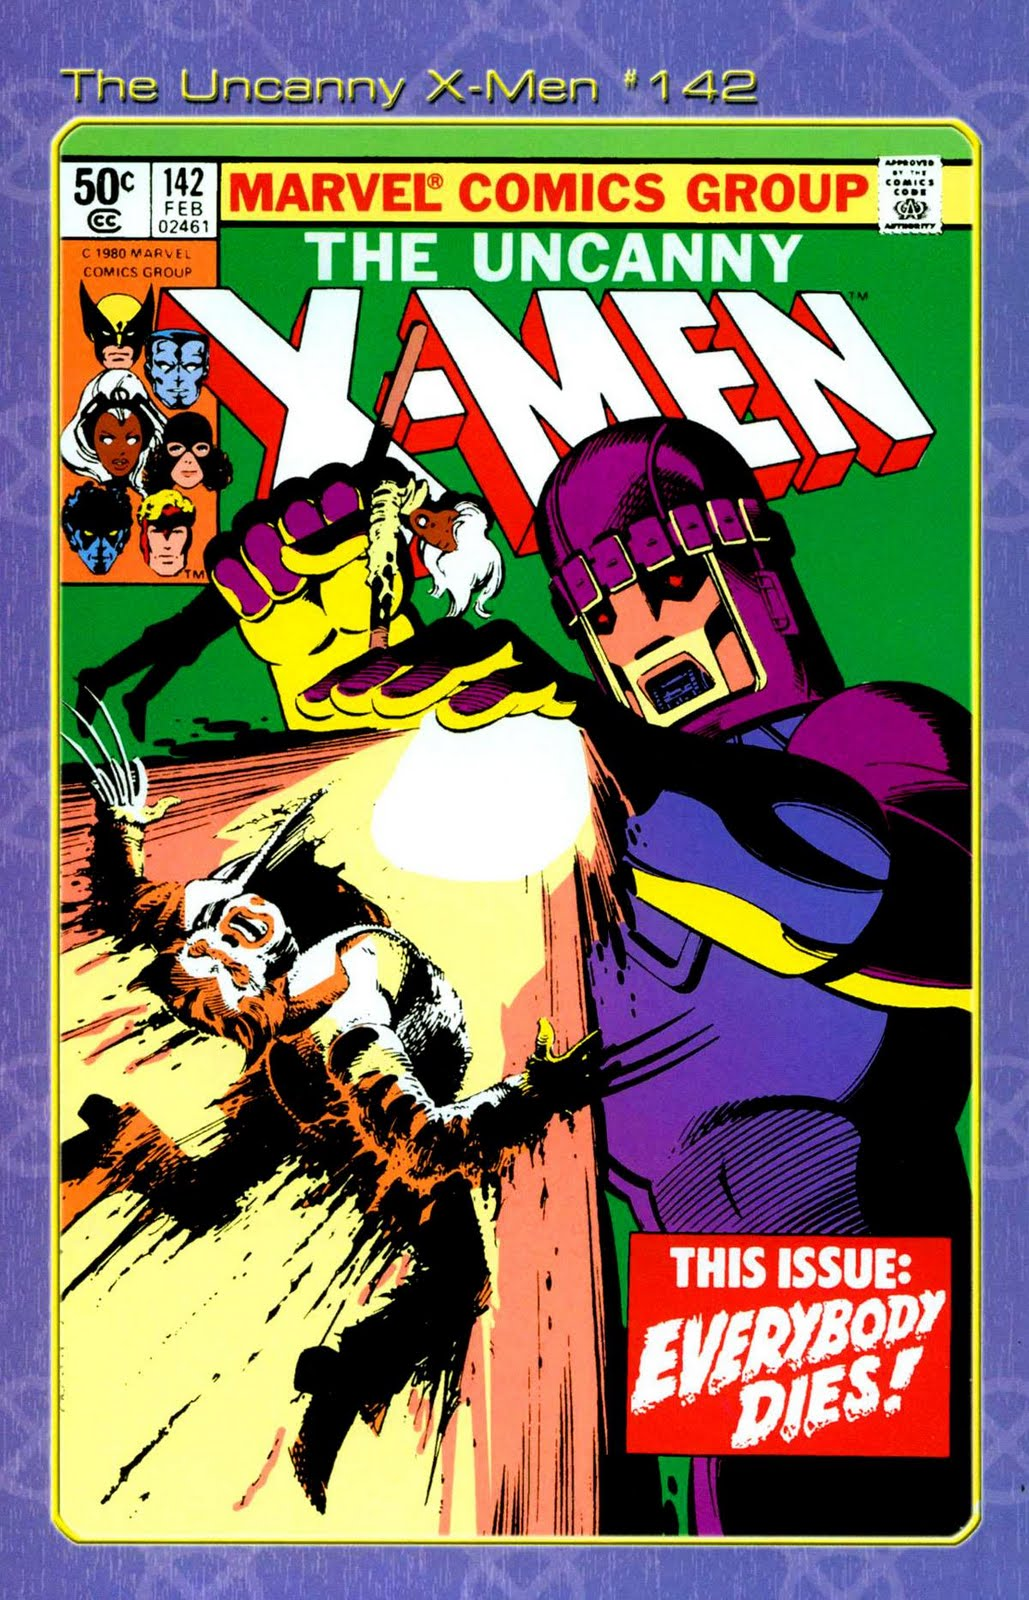 X-Men Days of Future Past - TPB - Page 127.jpg